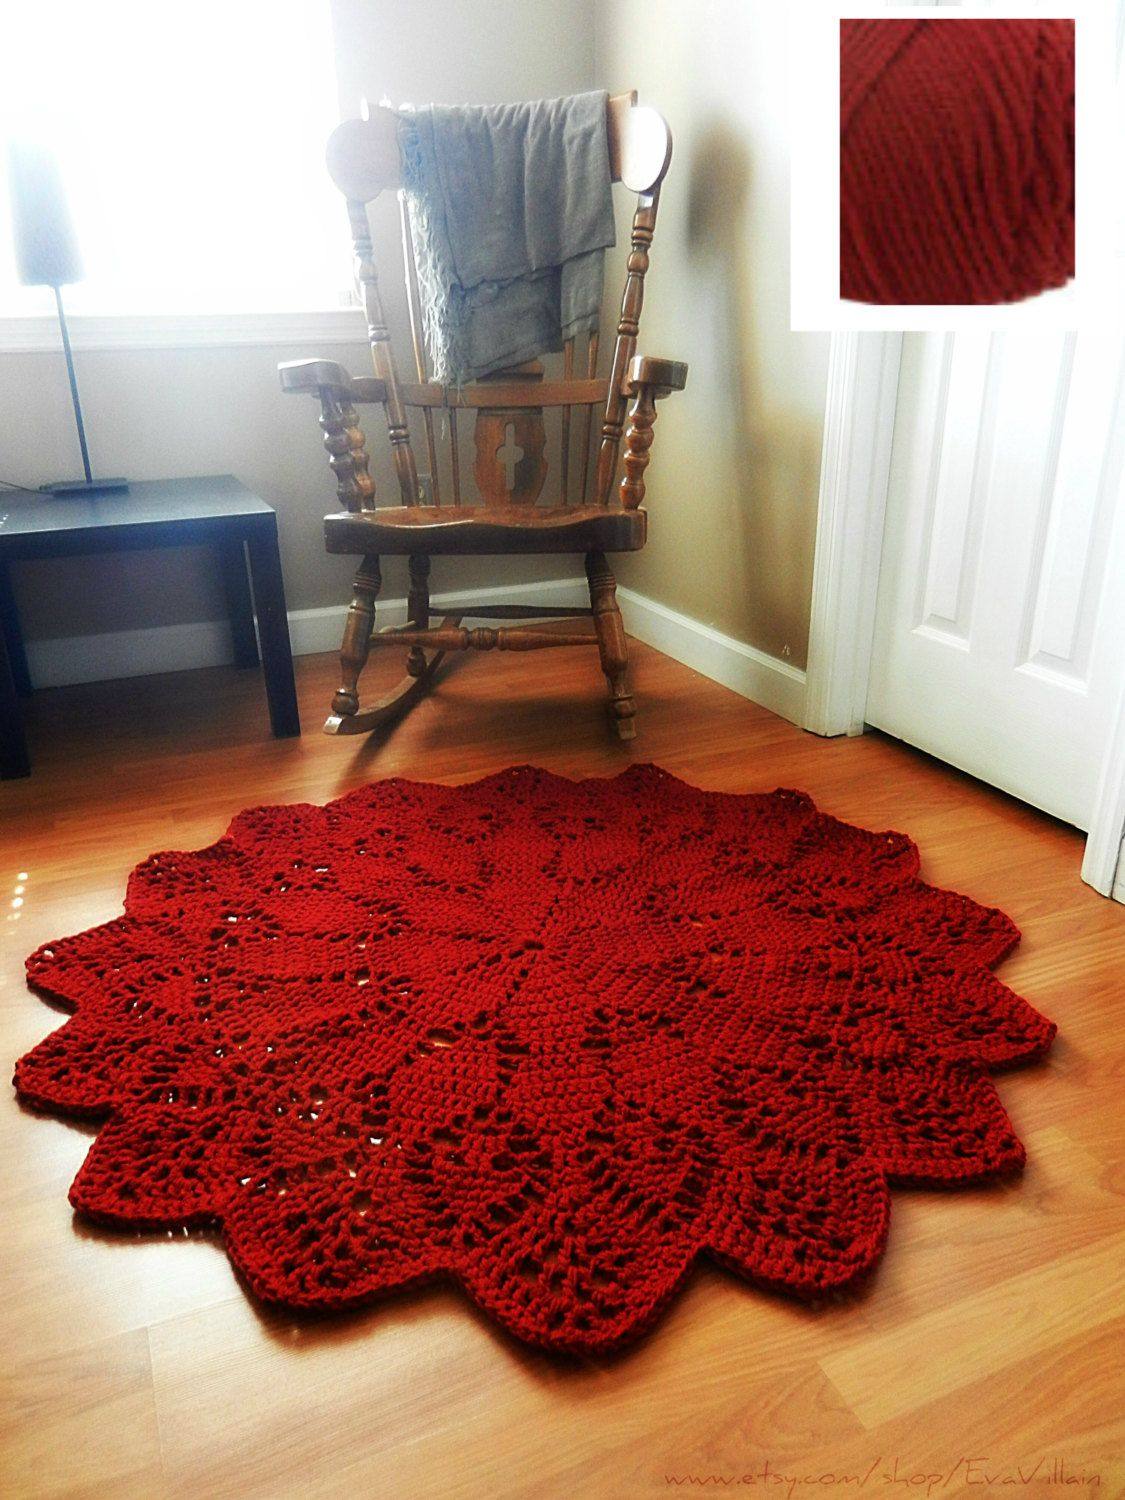 Large Crochet Doily Area Rug Dark Cherry Ruby Red Round Carpet Boho Chic Floor Mat French Provincial Cottage Decor Shabby Country Rustic